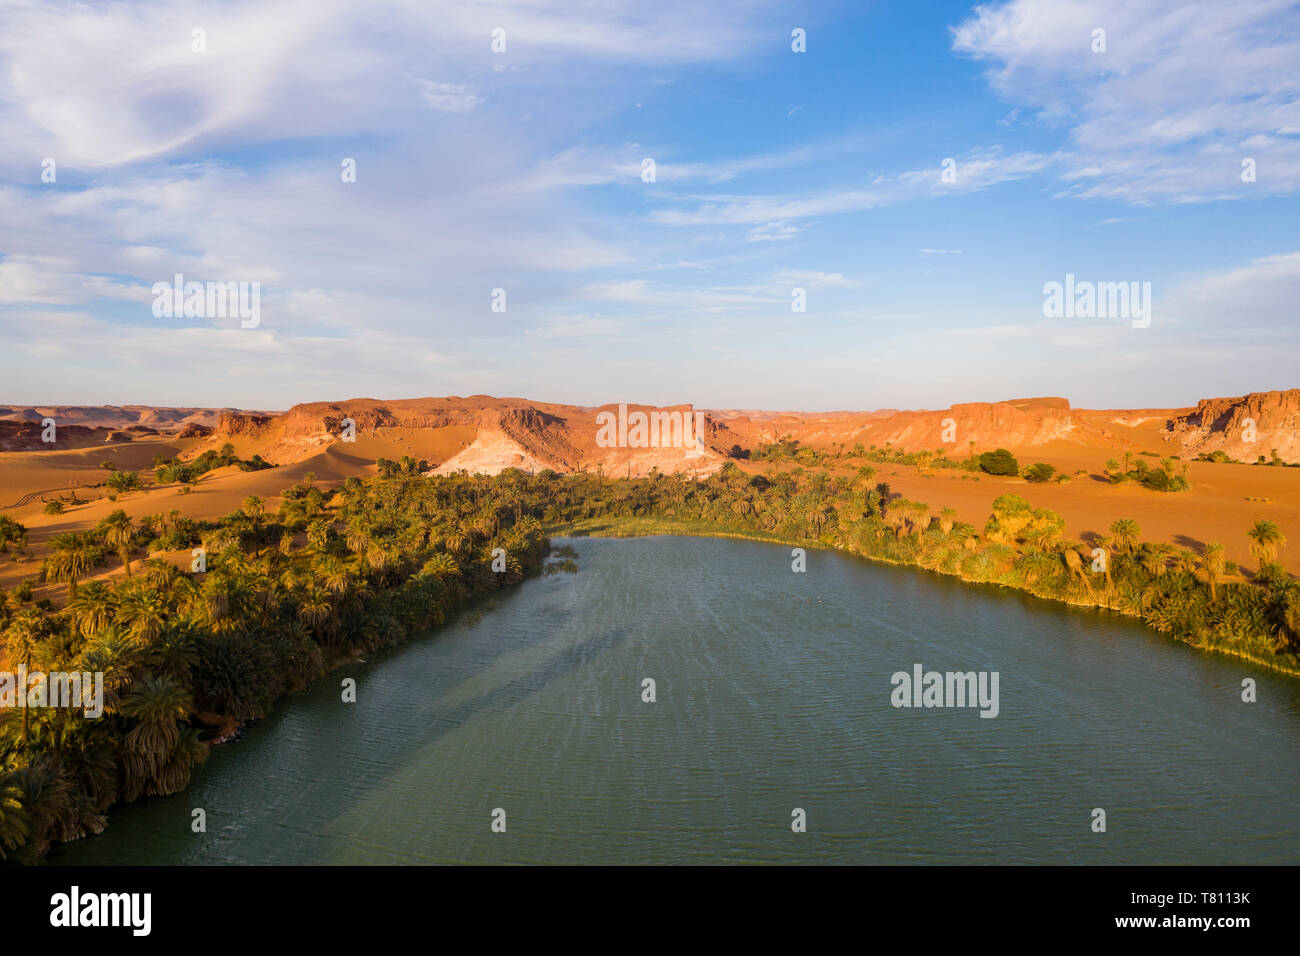 Aerial of the Ounianga lakes, UNESCO World Heritage Site, northern Chad, Africa - Stock Image